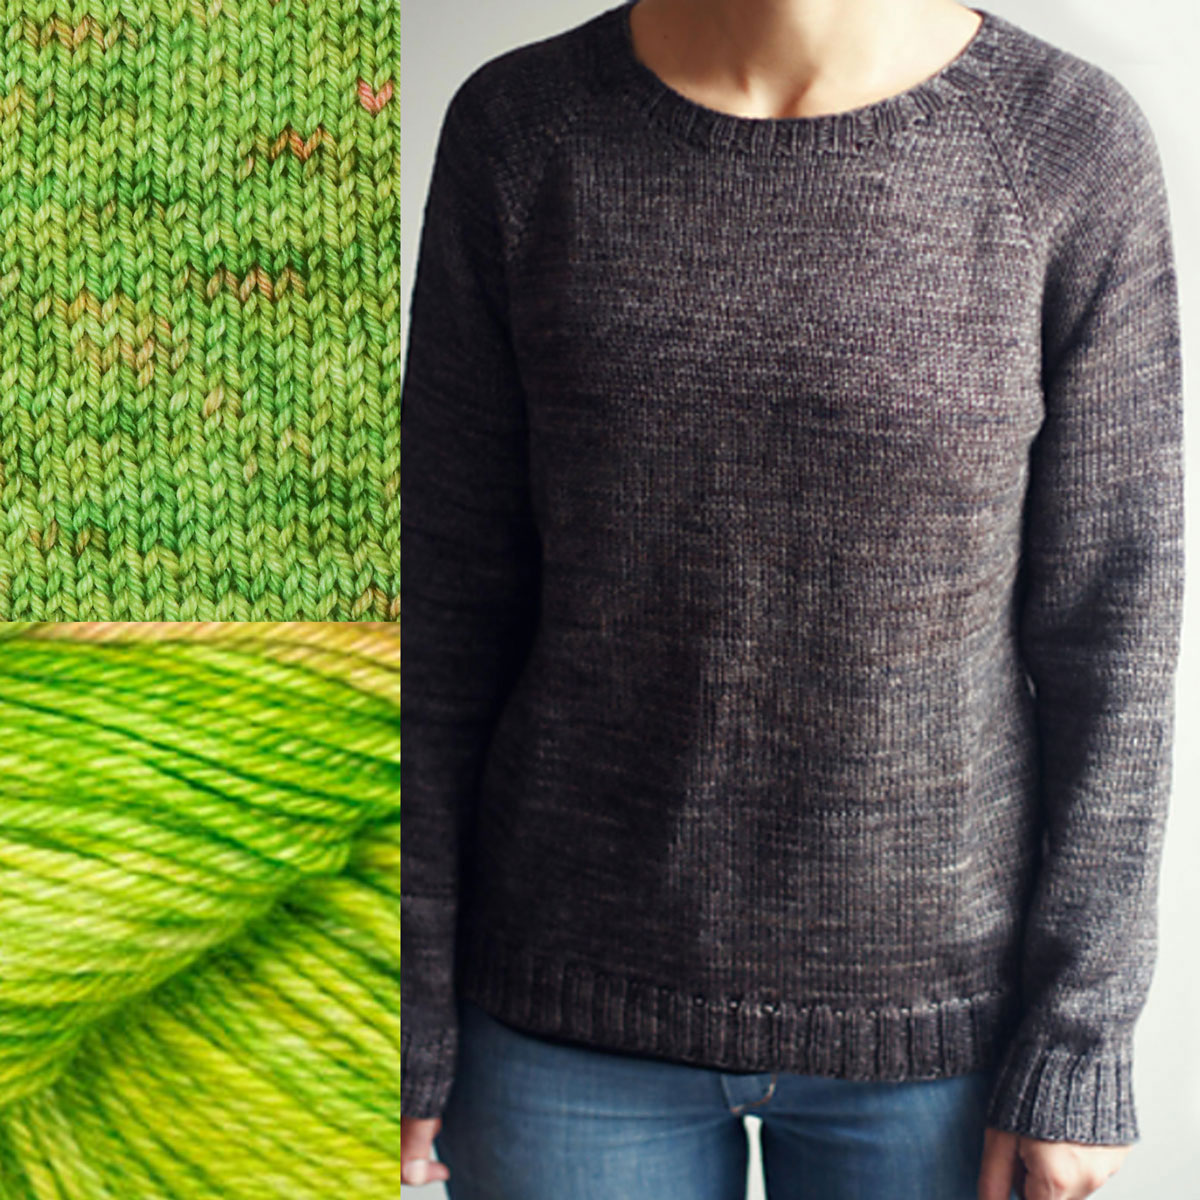 Madelinetosh Sweater Club - Pear Please